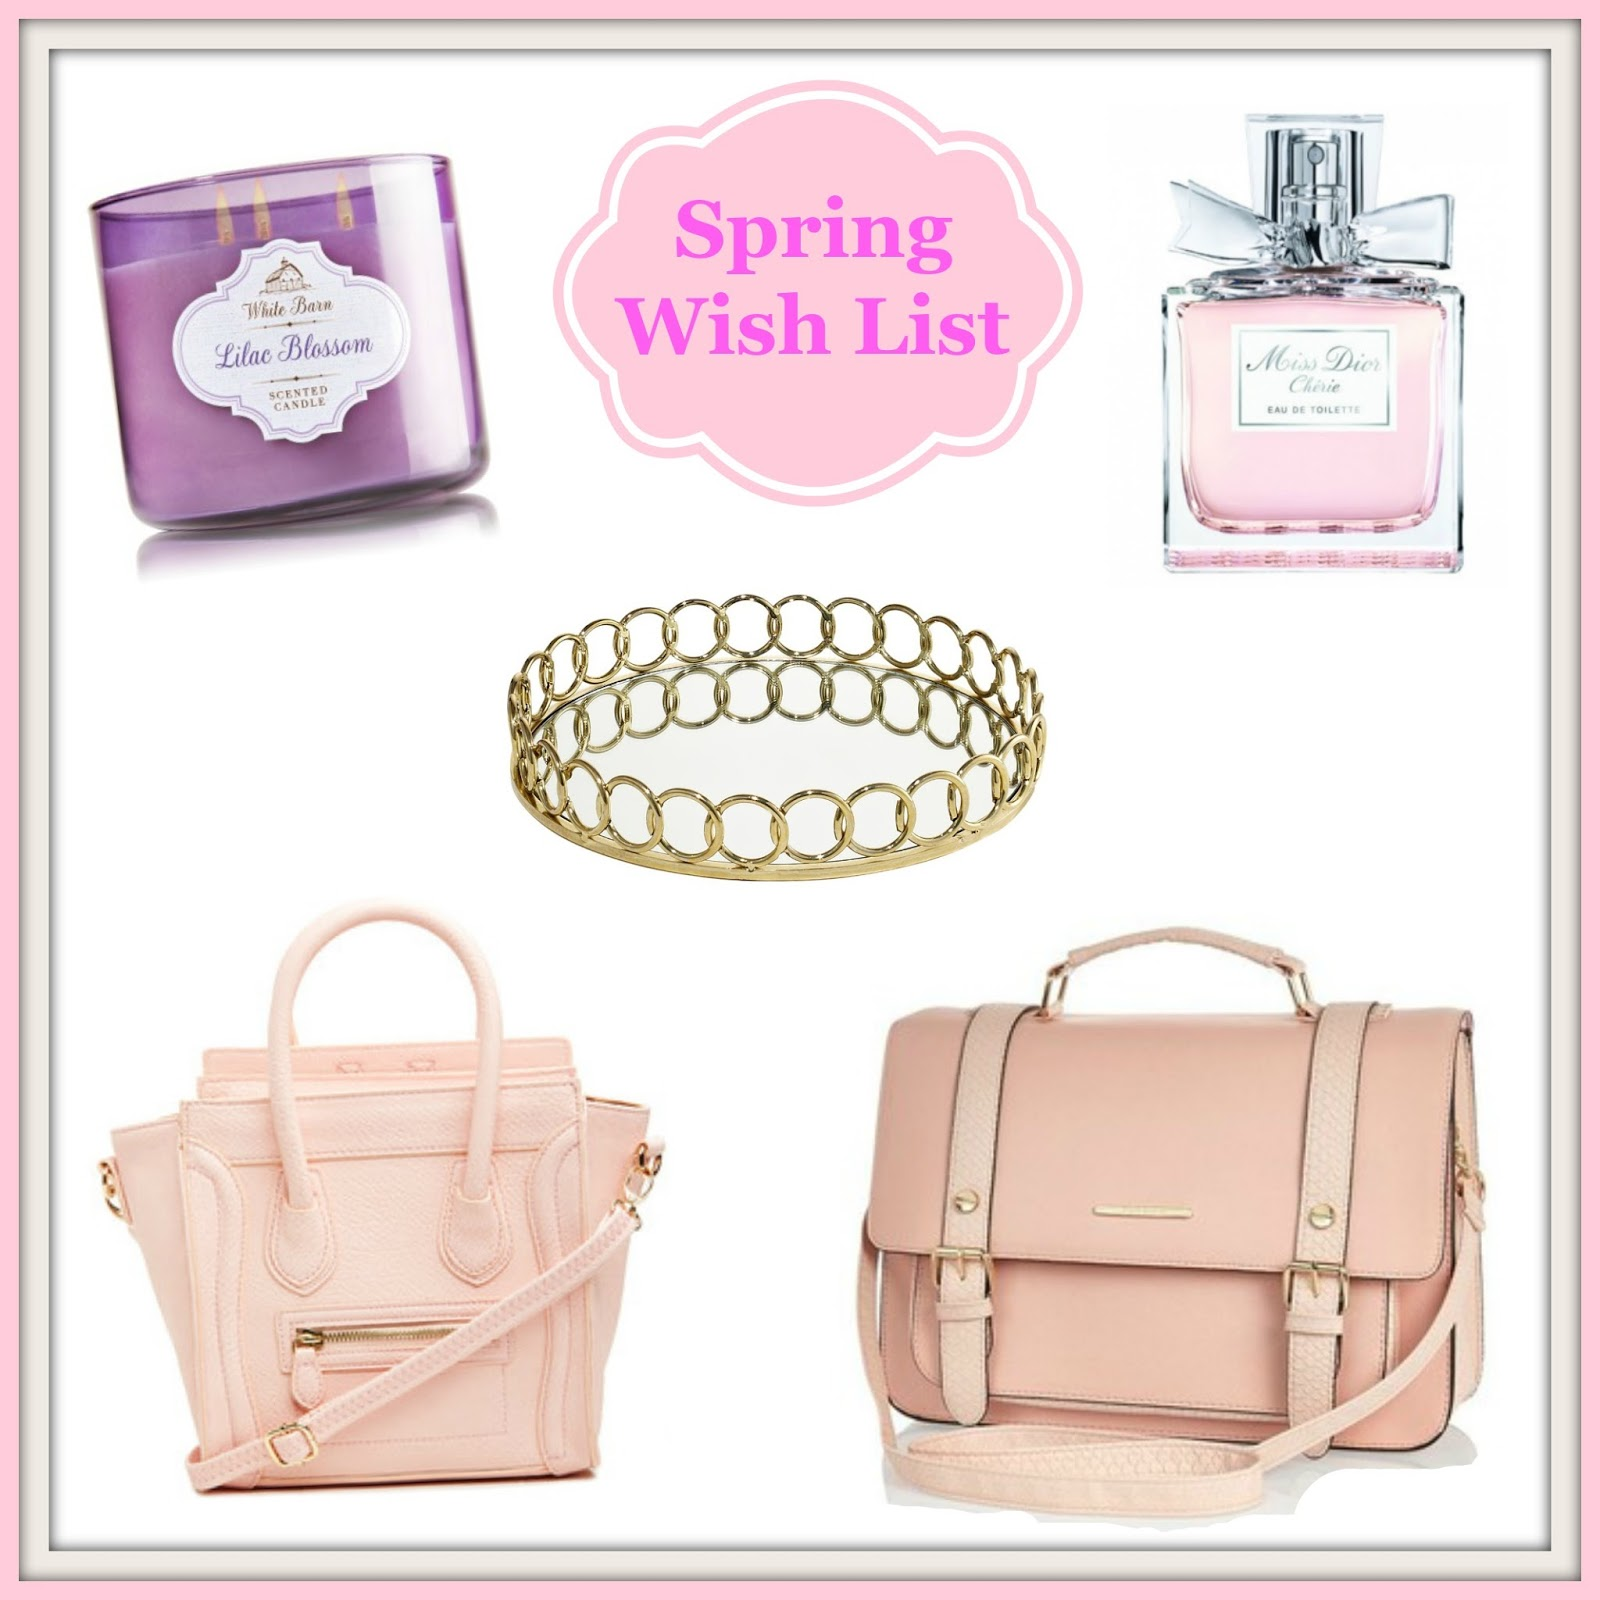 Bath & Body Works Lilac Blossom, Miss Dior Perfume, Gold Perfume Tray, Dailylook Mini Structured Pink Handbag, River Island Satchel